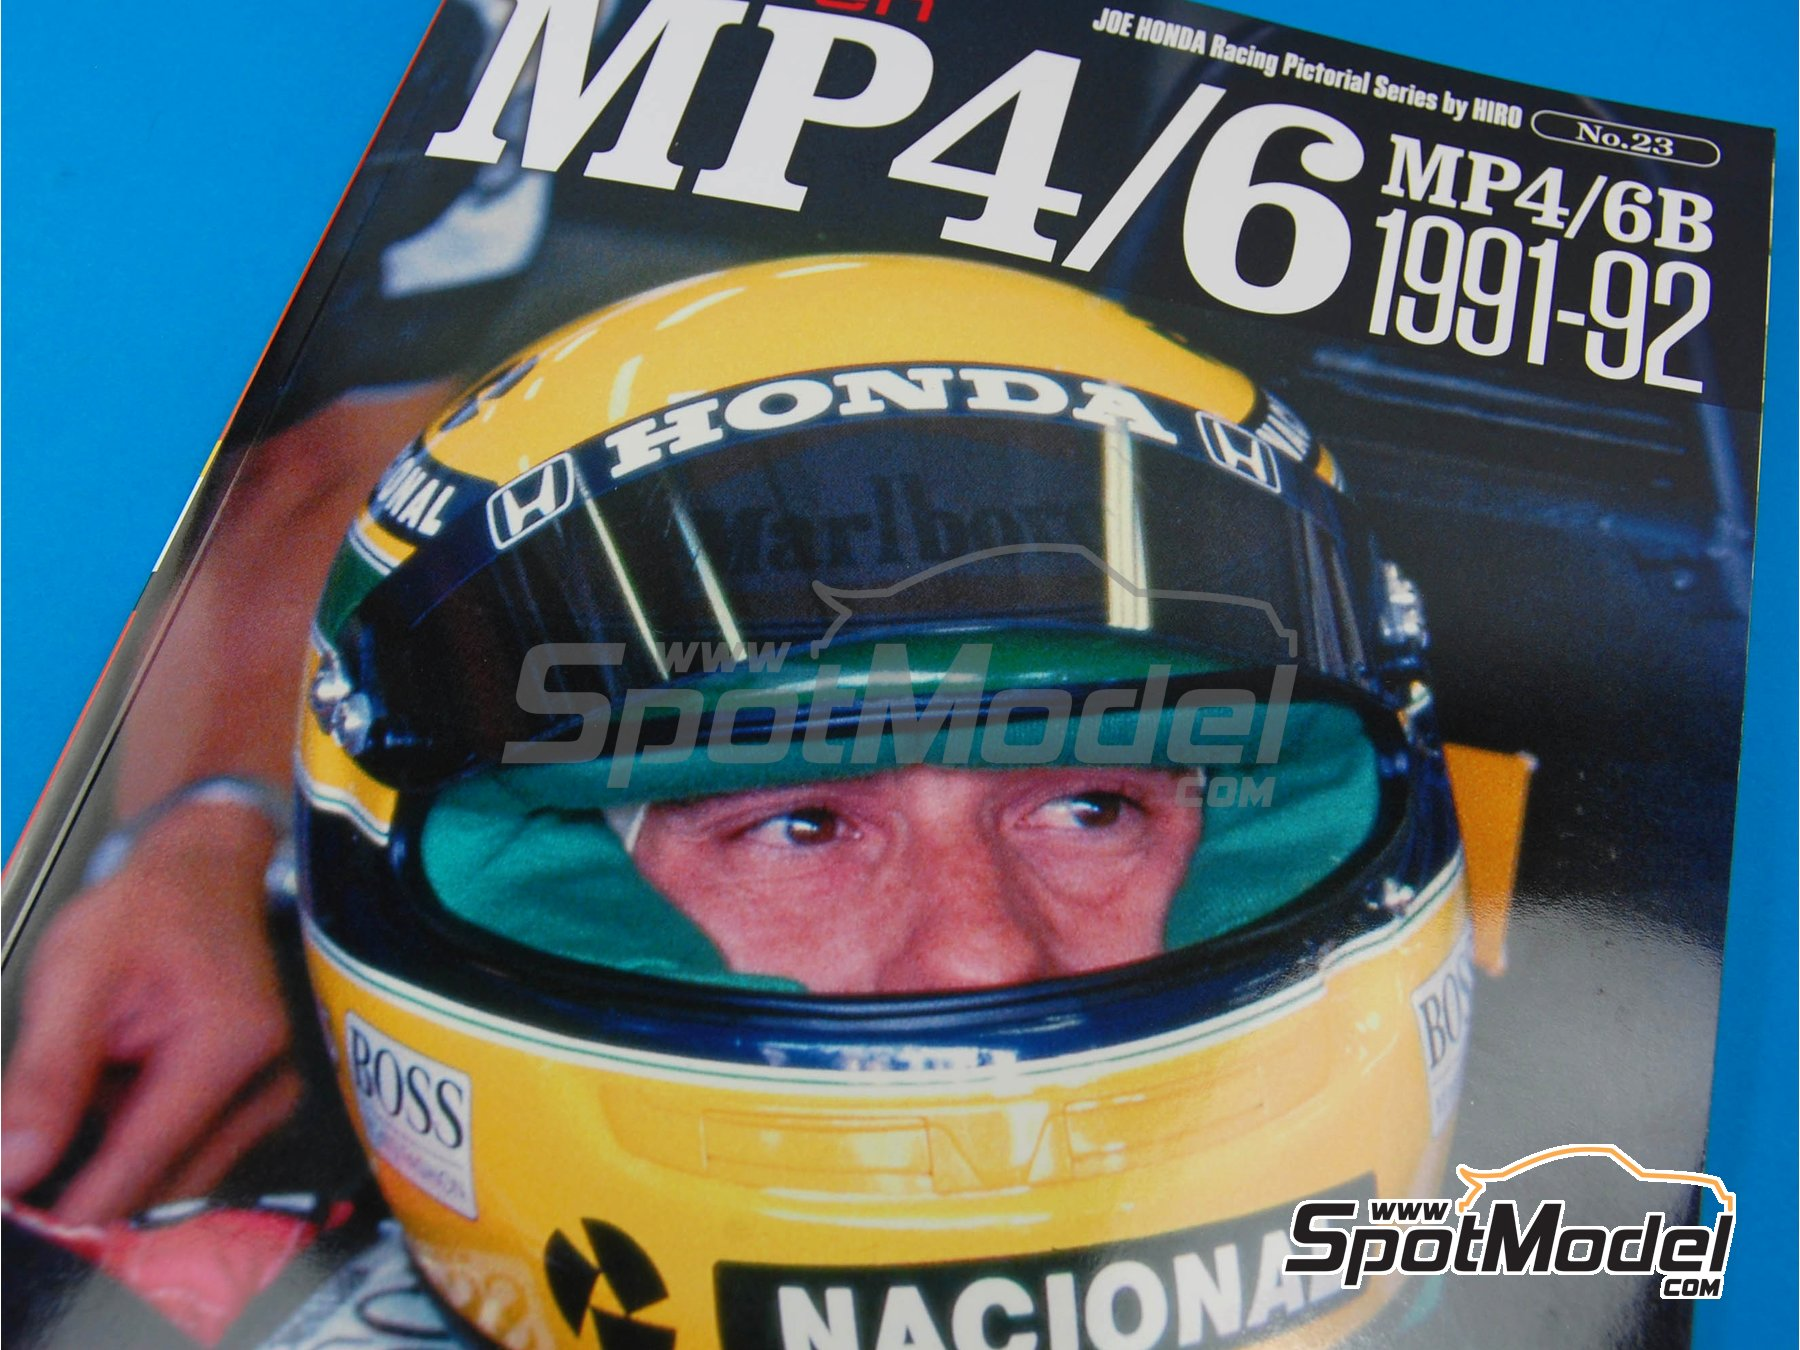 Image 2: JOE HONDA Racing Pictorial Series - Mc Laren MP4/6B - MP4/6 -  1991 y 1992 | Libro de referencia fabricado por Model Factory Hiro (ref. MFH-JH23)